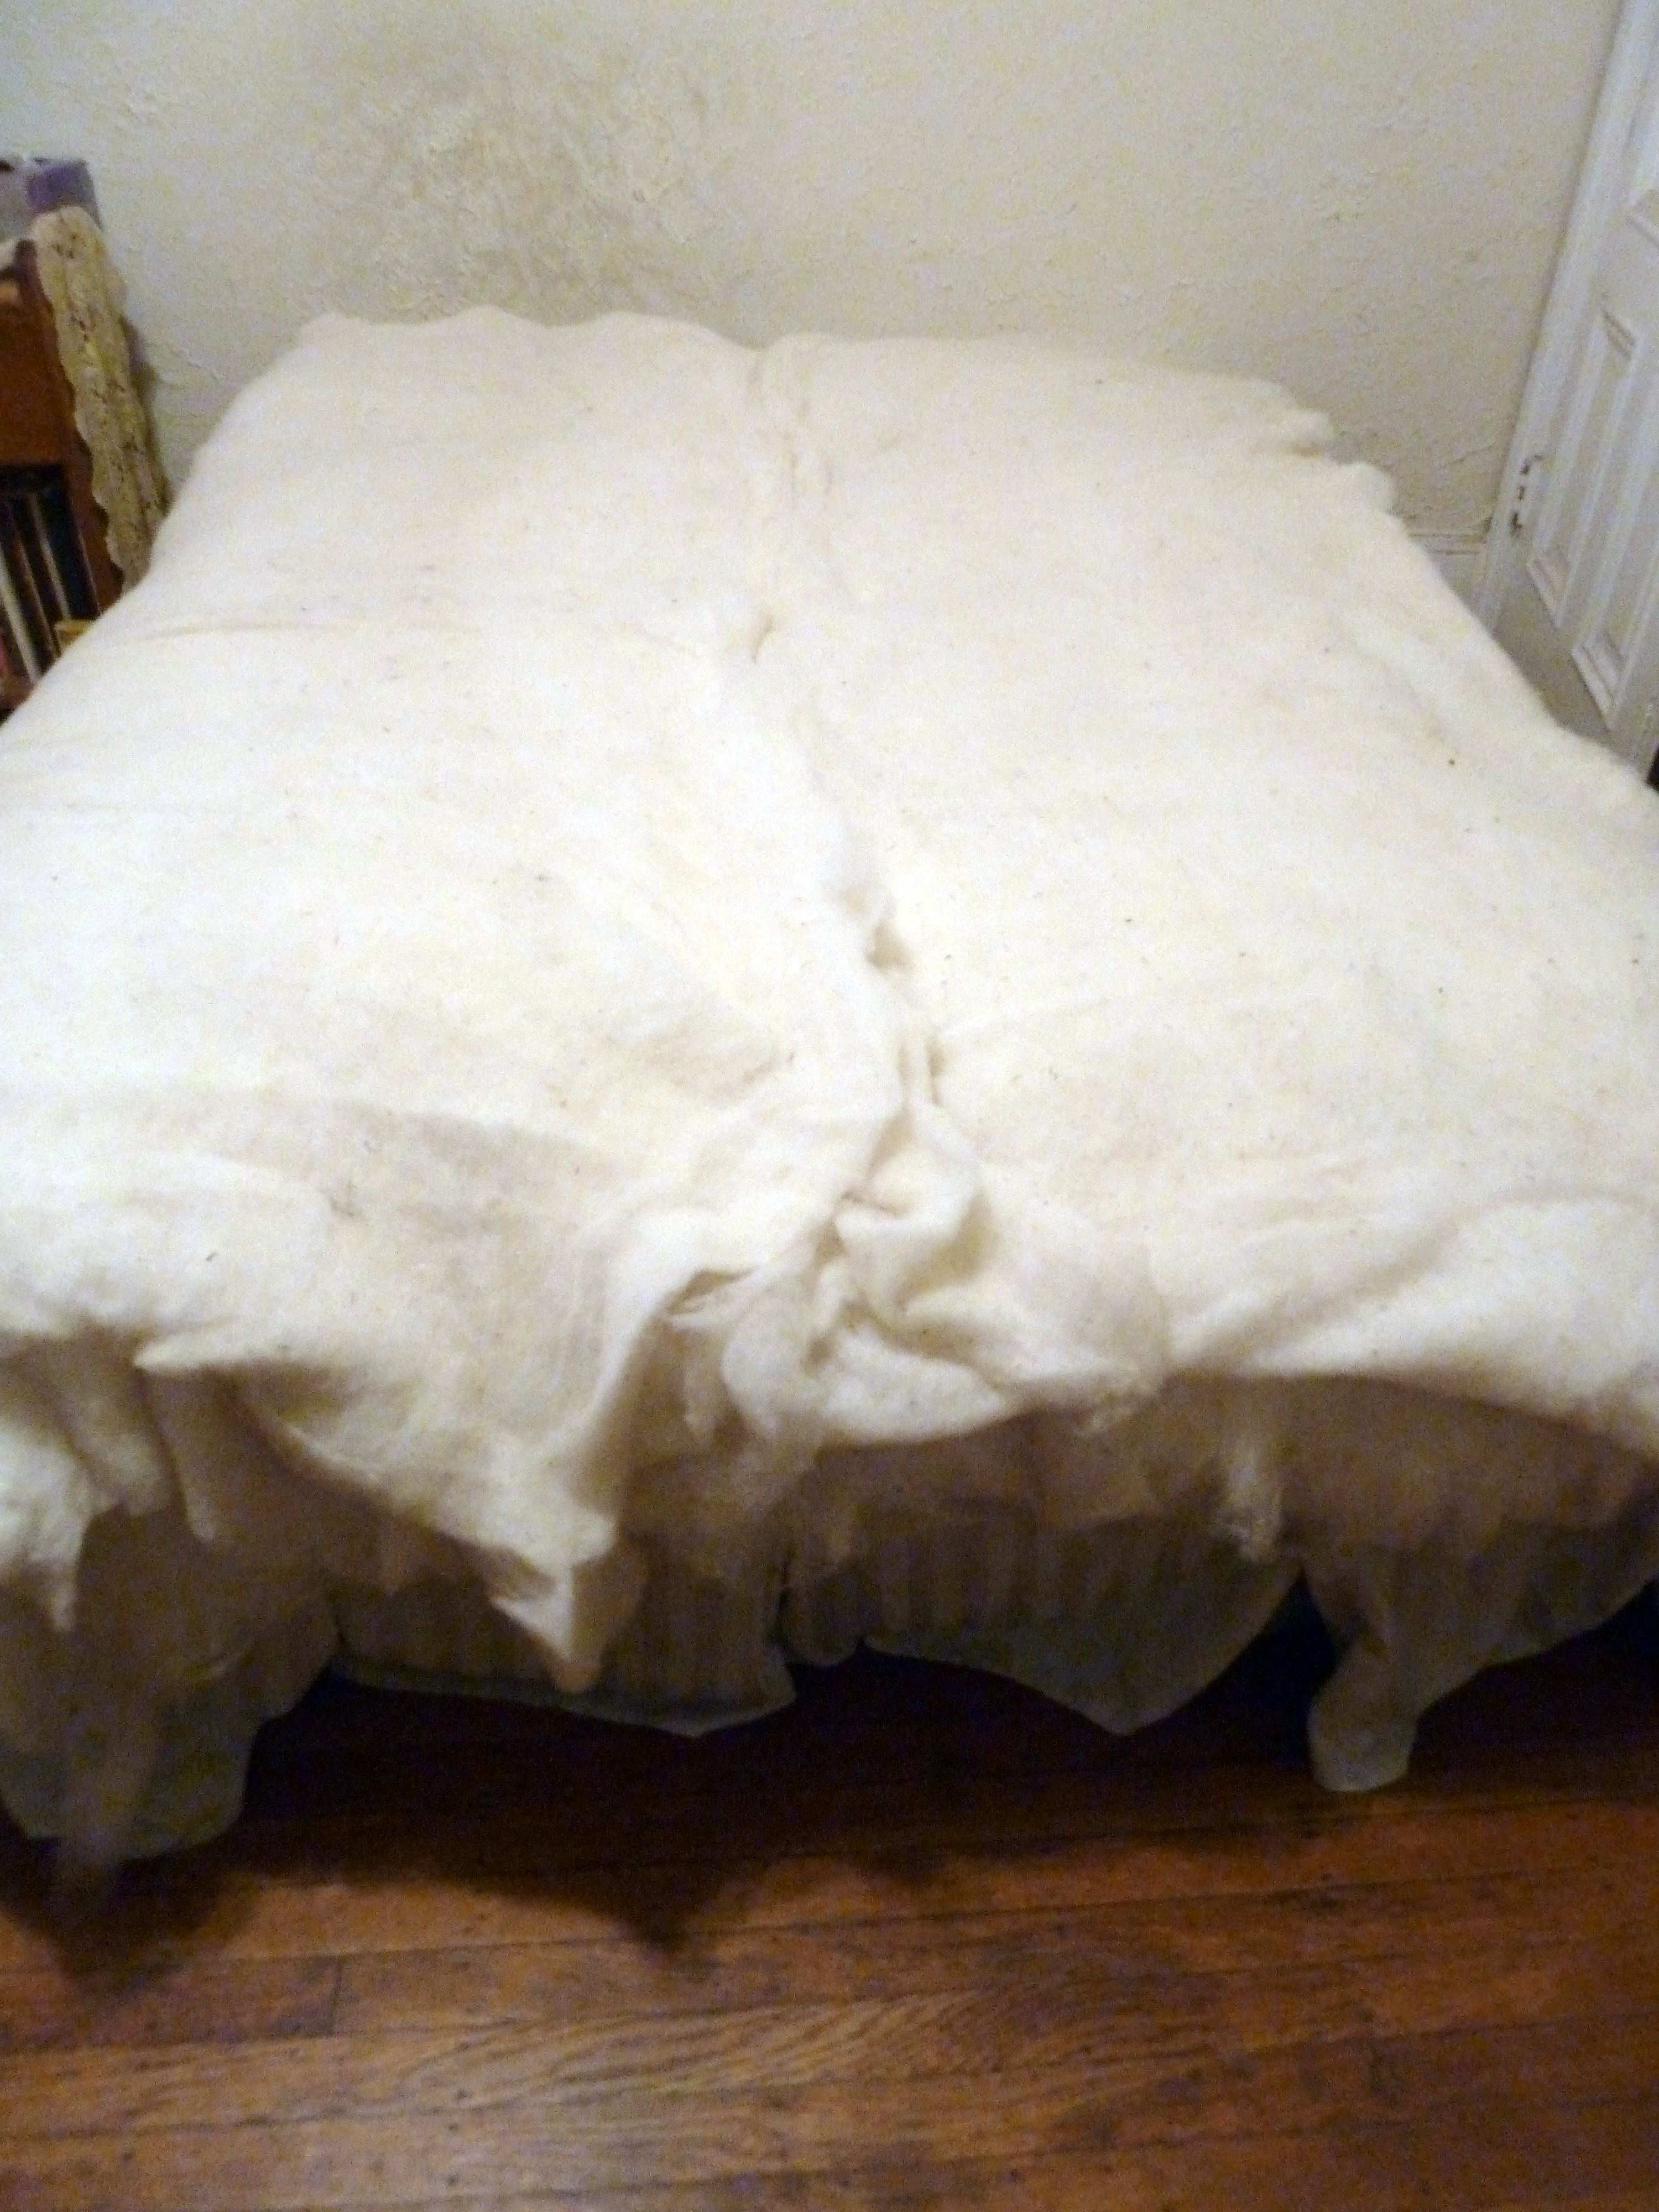 wool batting layers pulled on top of buckwheat hull pillow inserts